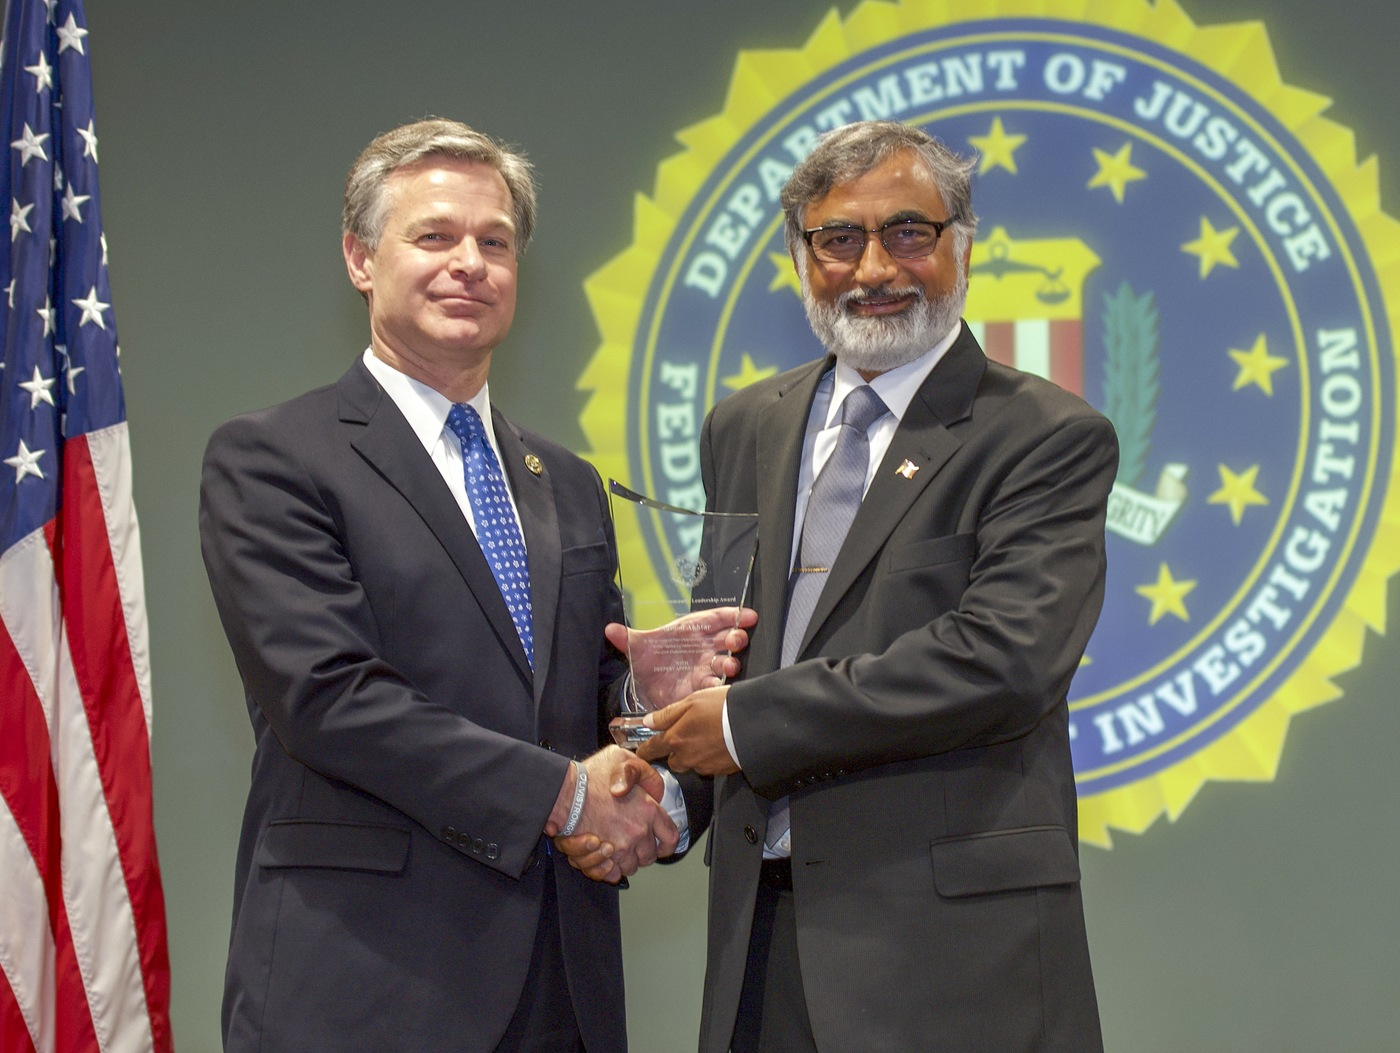 FBI Director Christopher Wray presents Milwaukee Division recipient Masood Akhtar with the Director's Community Leadership Award (DCLA) at a ceremony at FBI Headquarters on May 3, 2019.